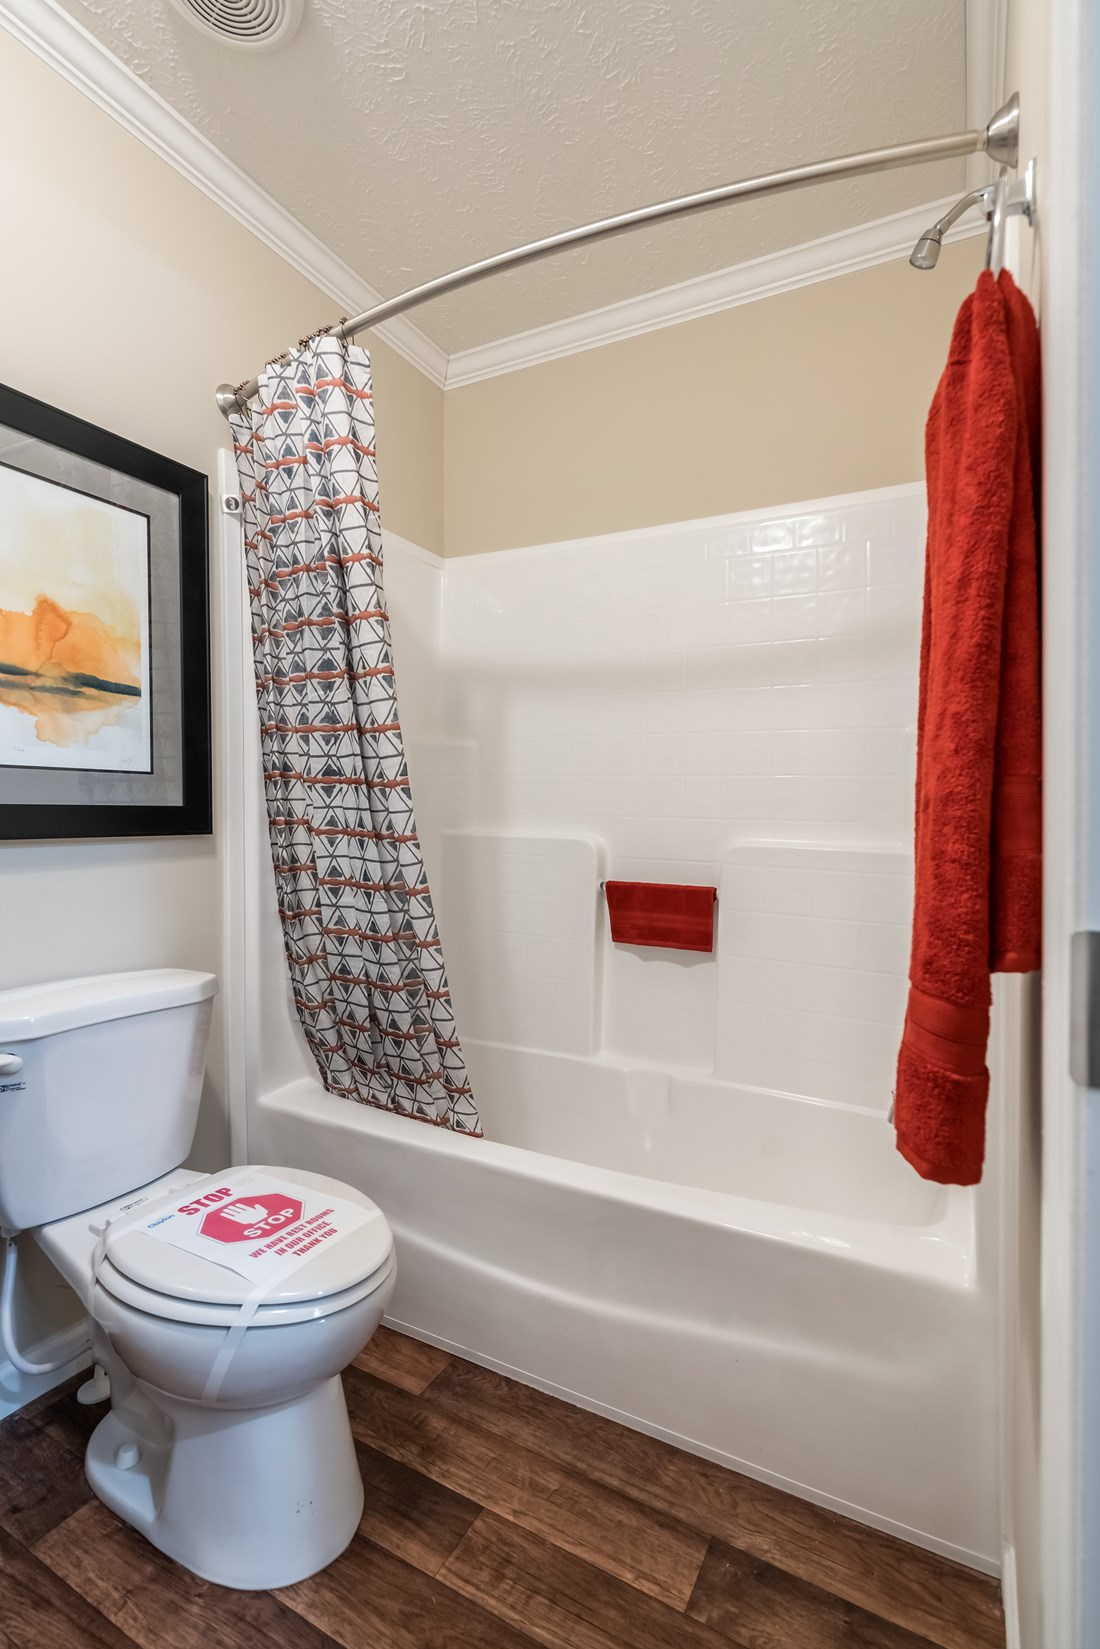 The BROOKLINE FLEX Guest Bathroom. This Manufactured Mobile Home features 4 bedrooms and 2 baths.